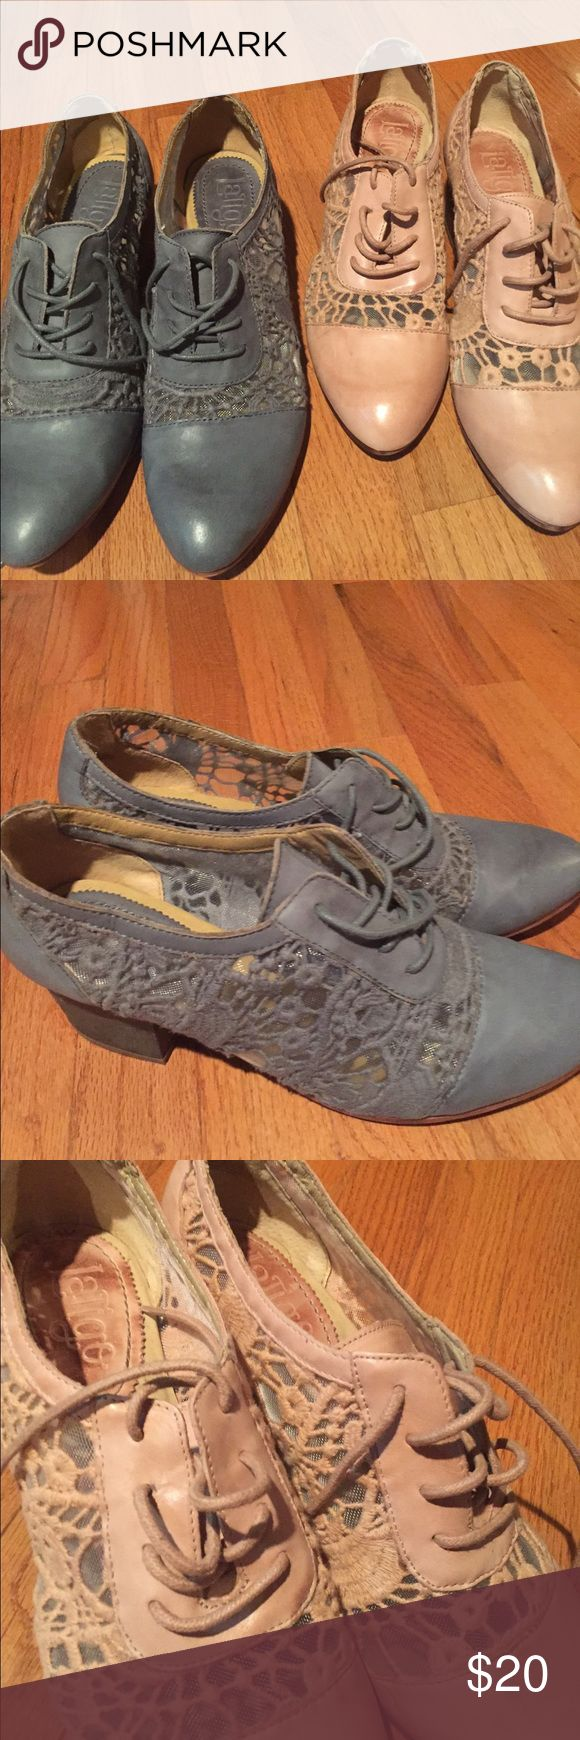 Gorgeous set of 2 lace Oxford shoes! Set of 2 Latigo lace oxfords!  Wonderful condition like brand new!  The blue pair have been worn once and the peach pair have never been worn.  Great dressed up or down! Shoes